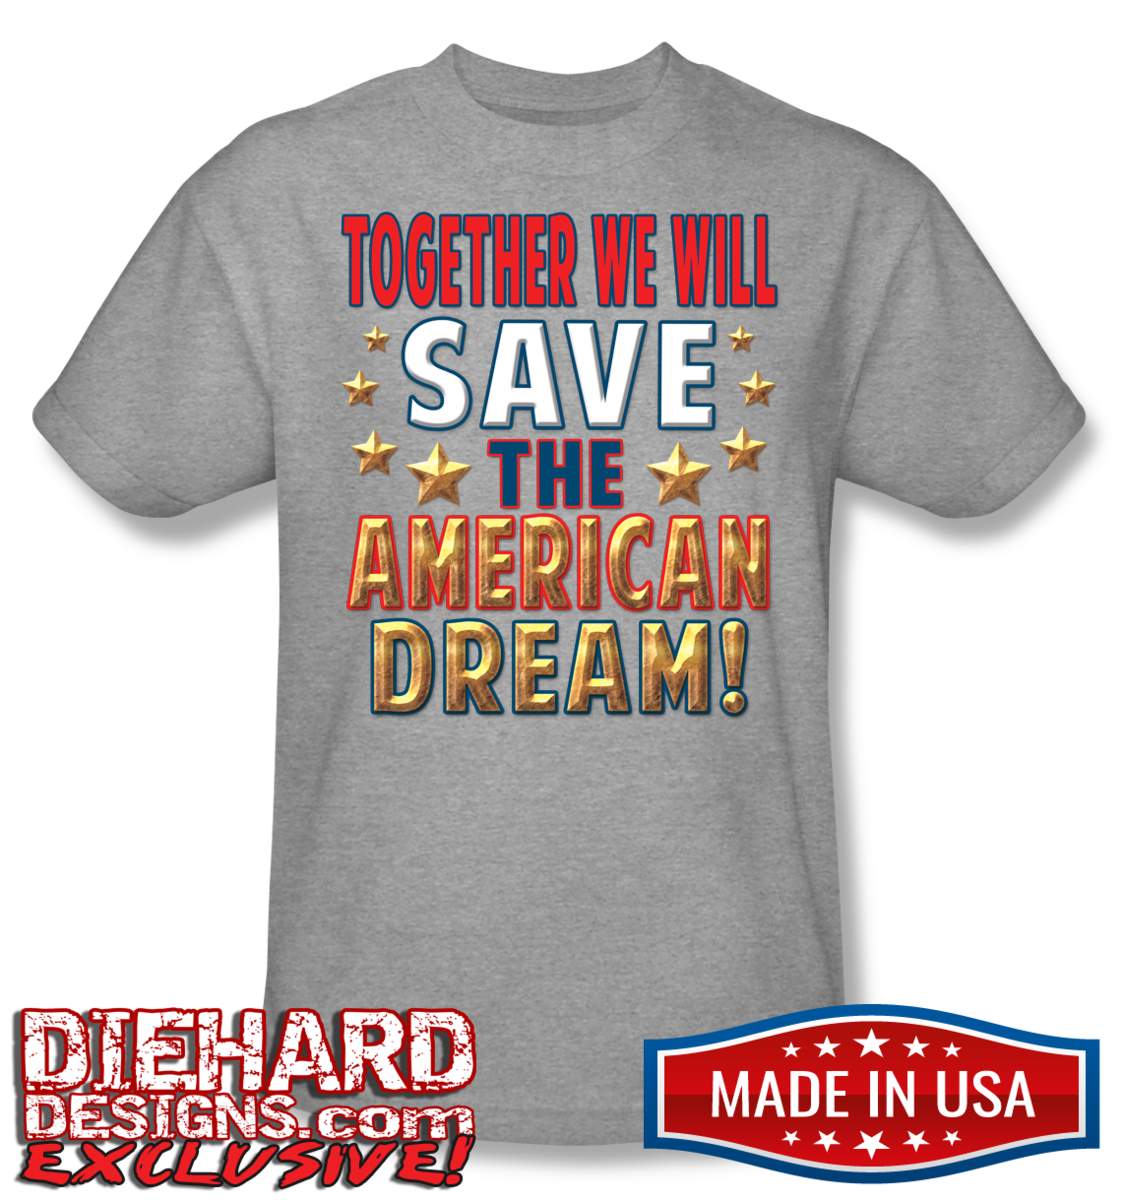 Together we will save the american dream made in usa t shirt for How to copyright t shirt designs